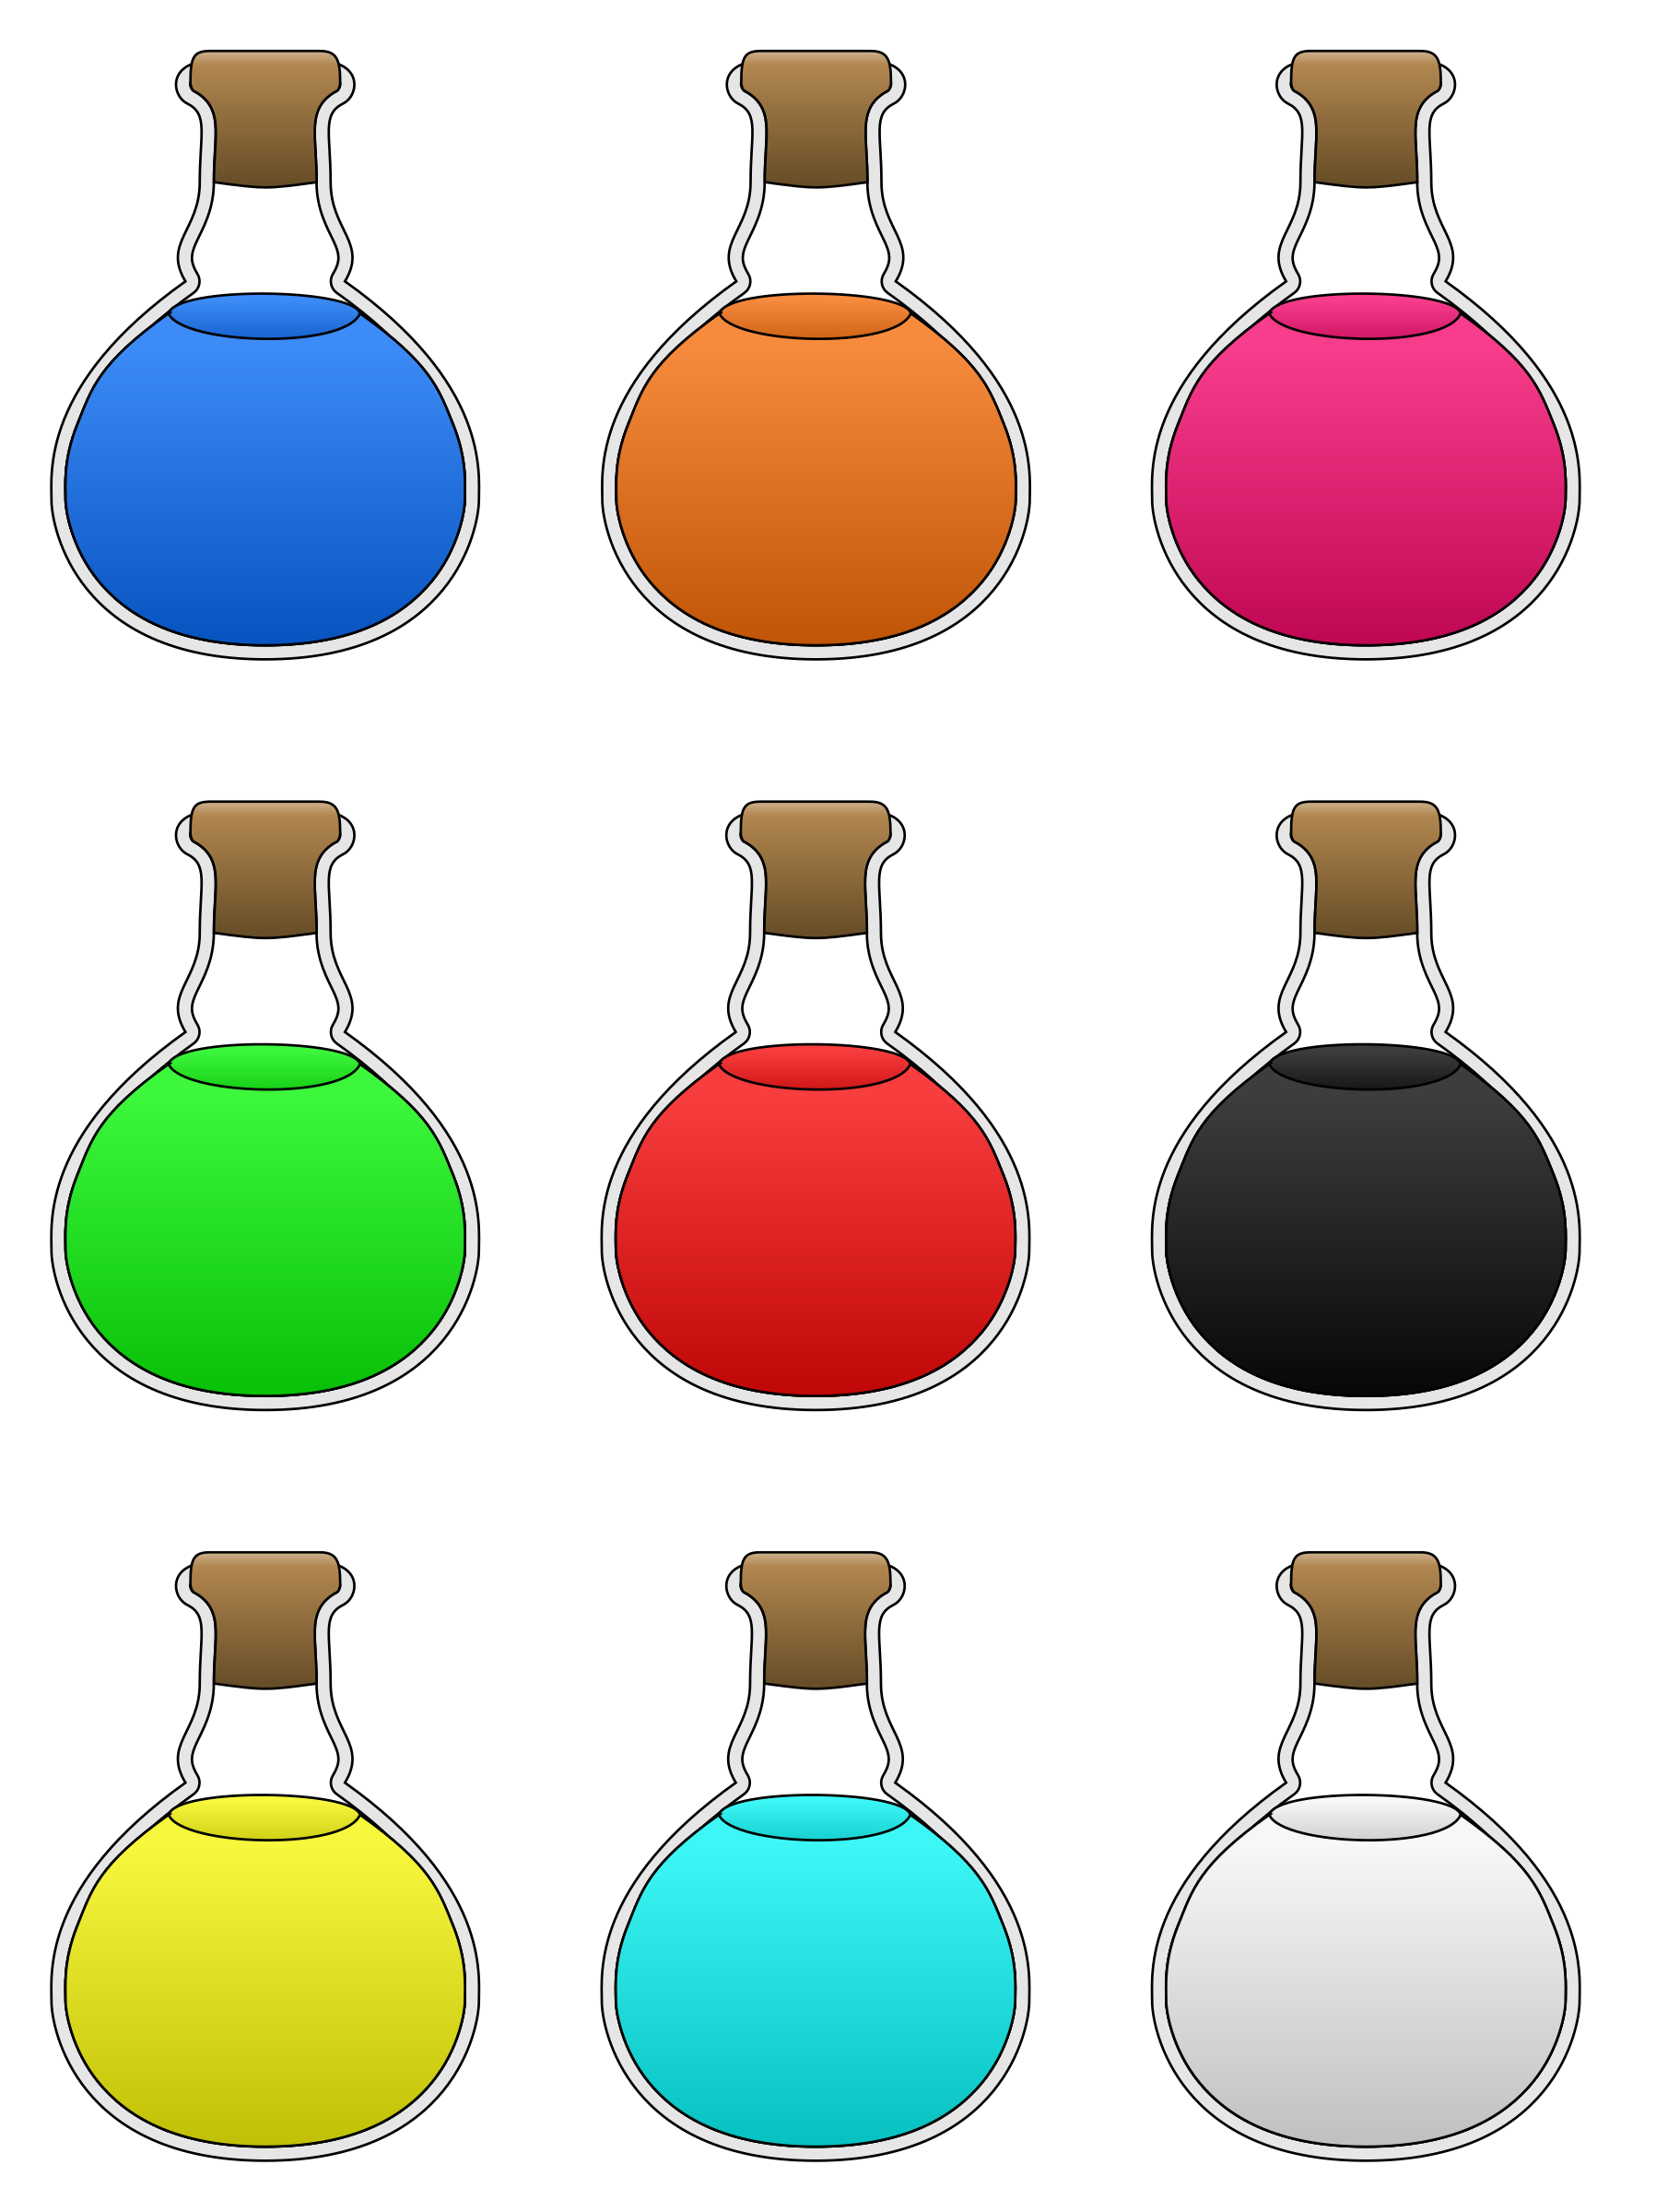 https://openclipart.org/image/2400px/svg_to_png/194632/potionlist.png